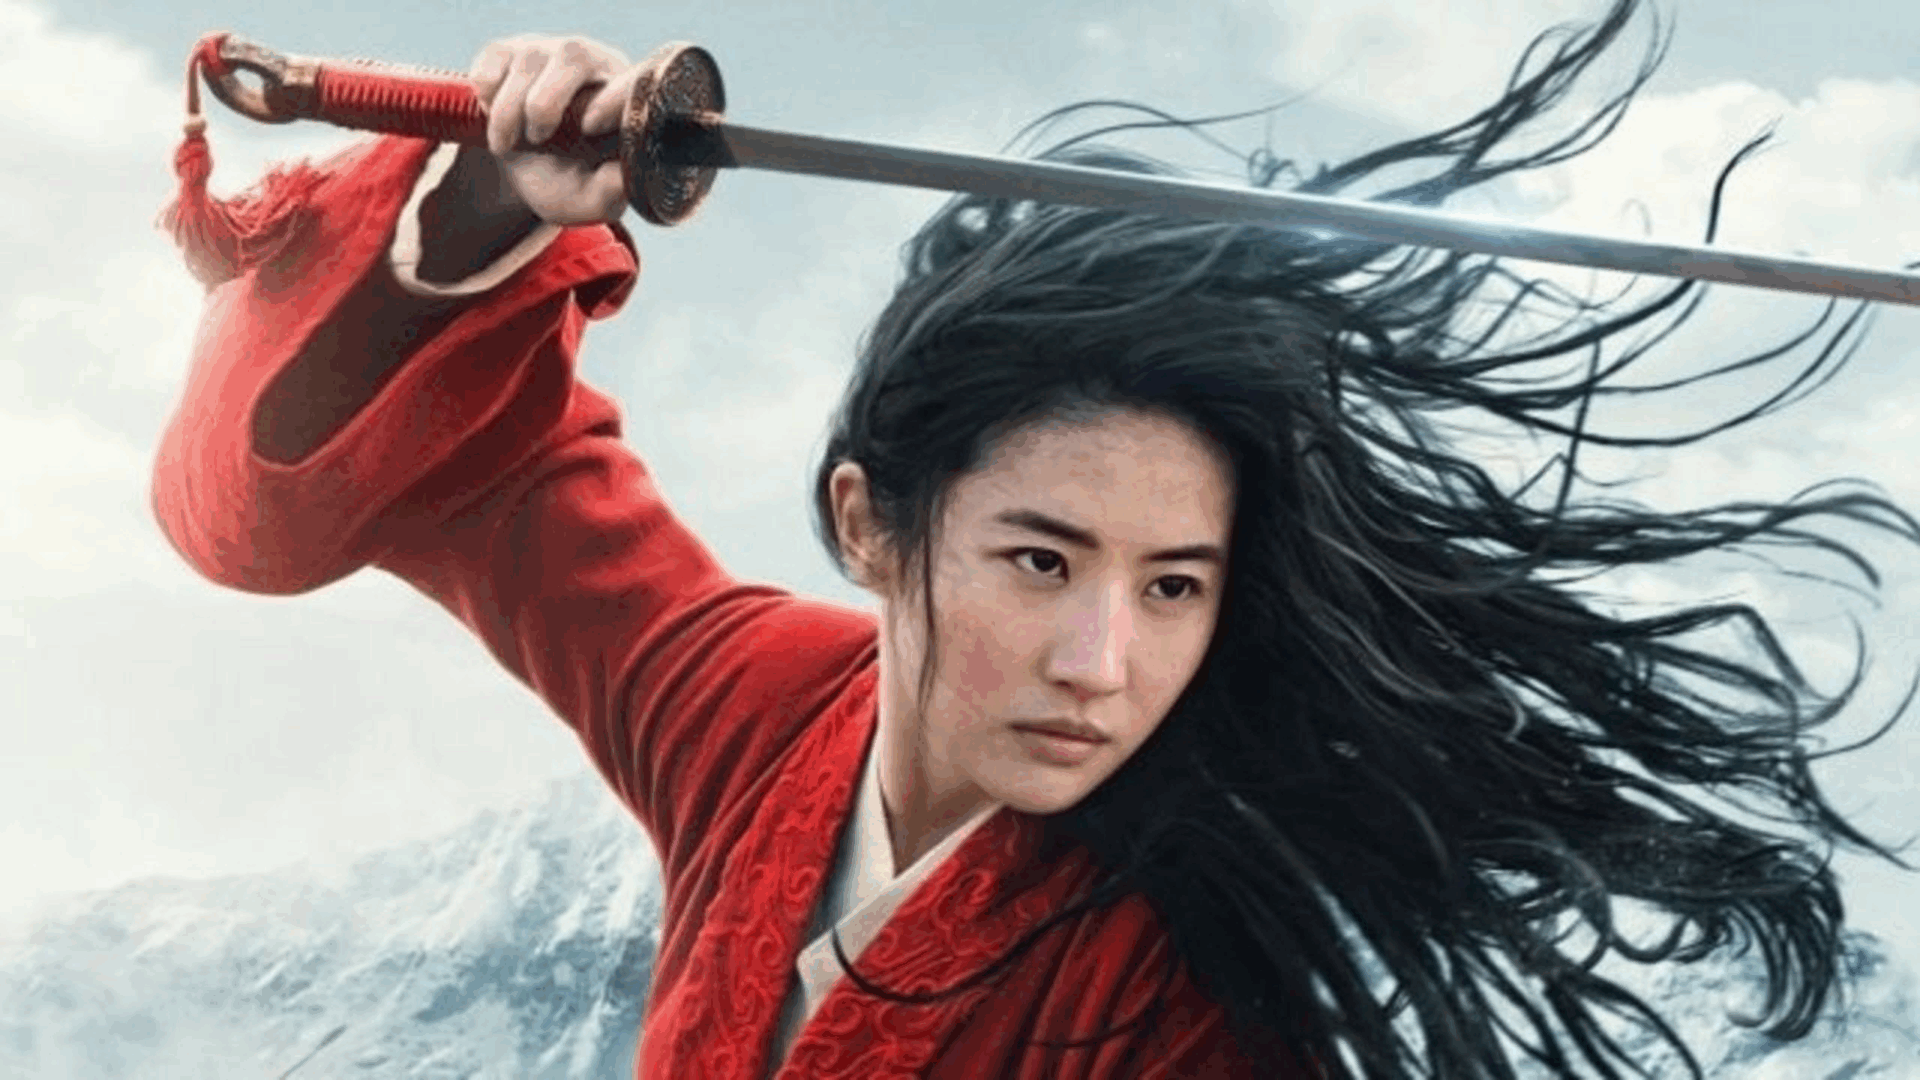 Mulan features Disney's toughest character in history